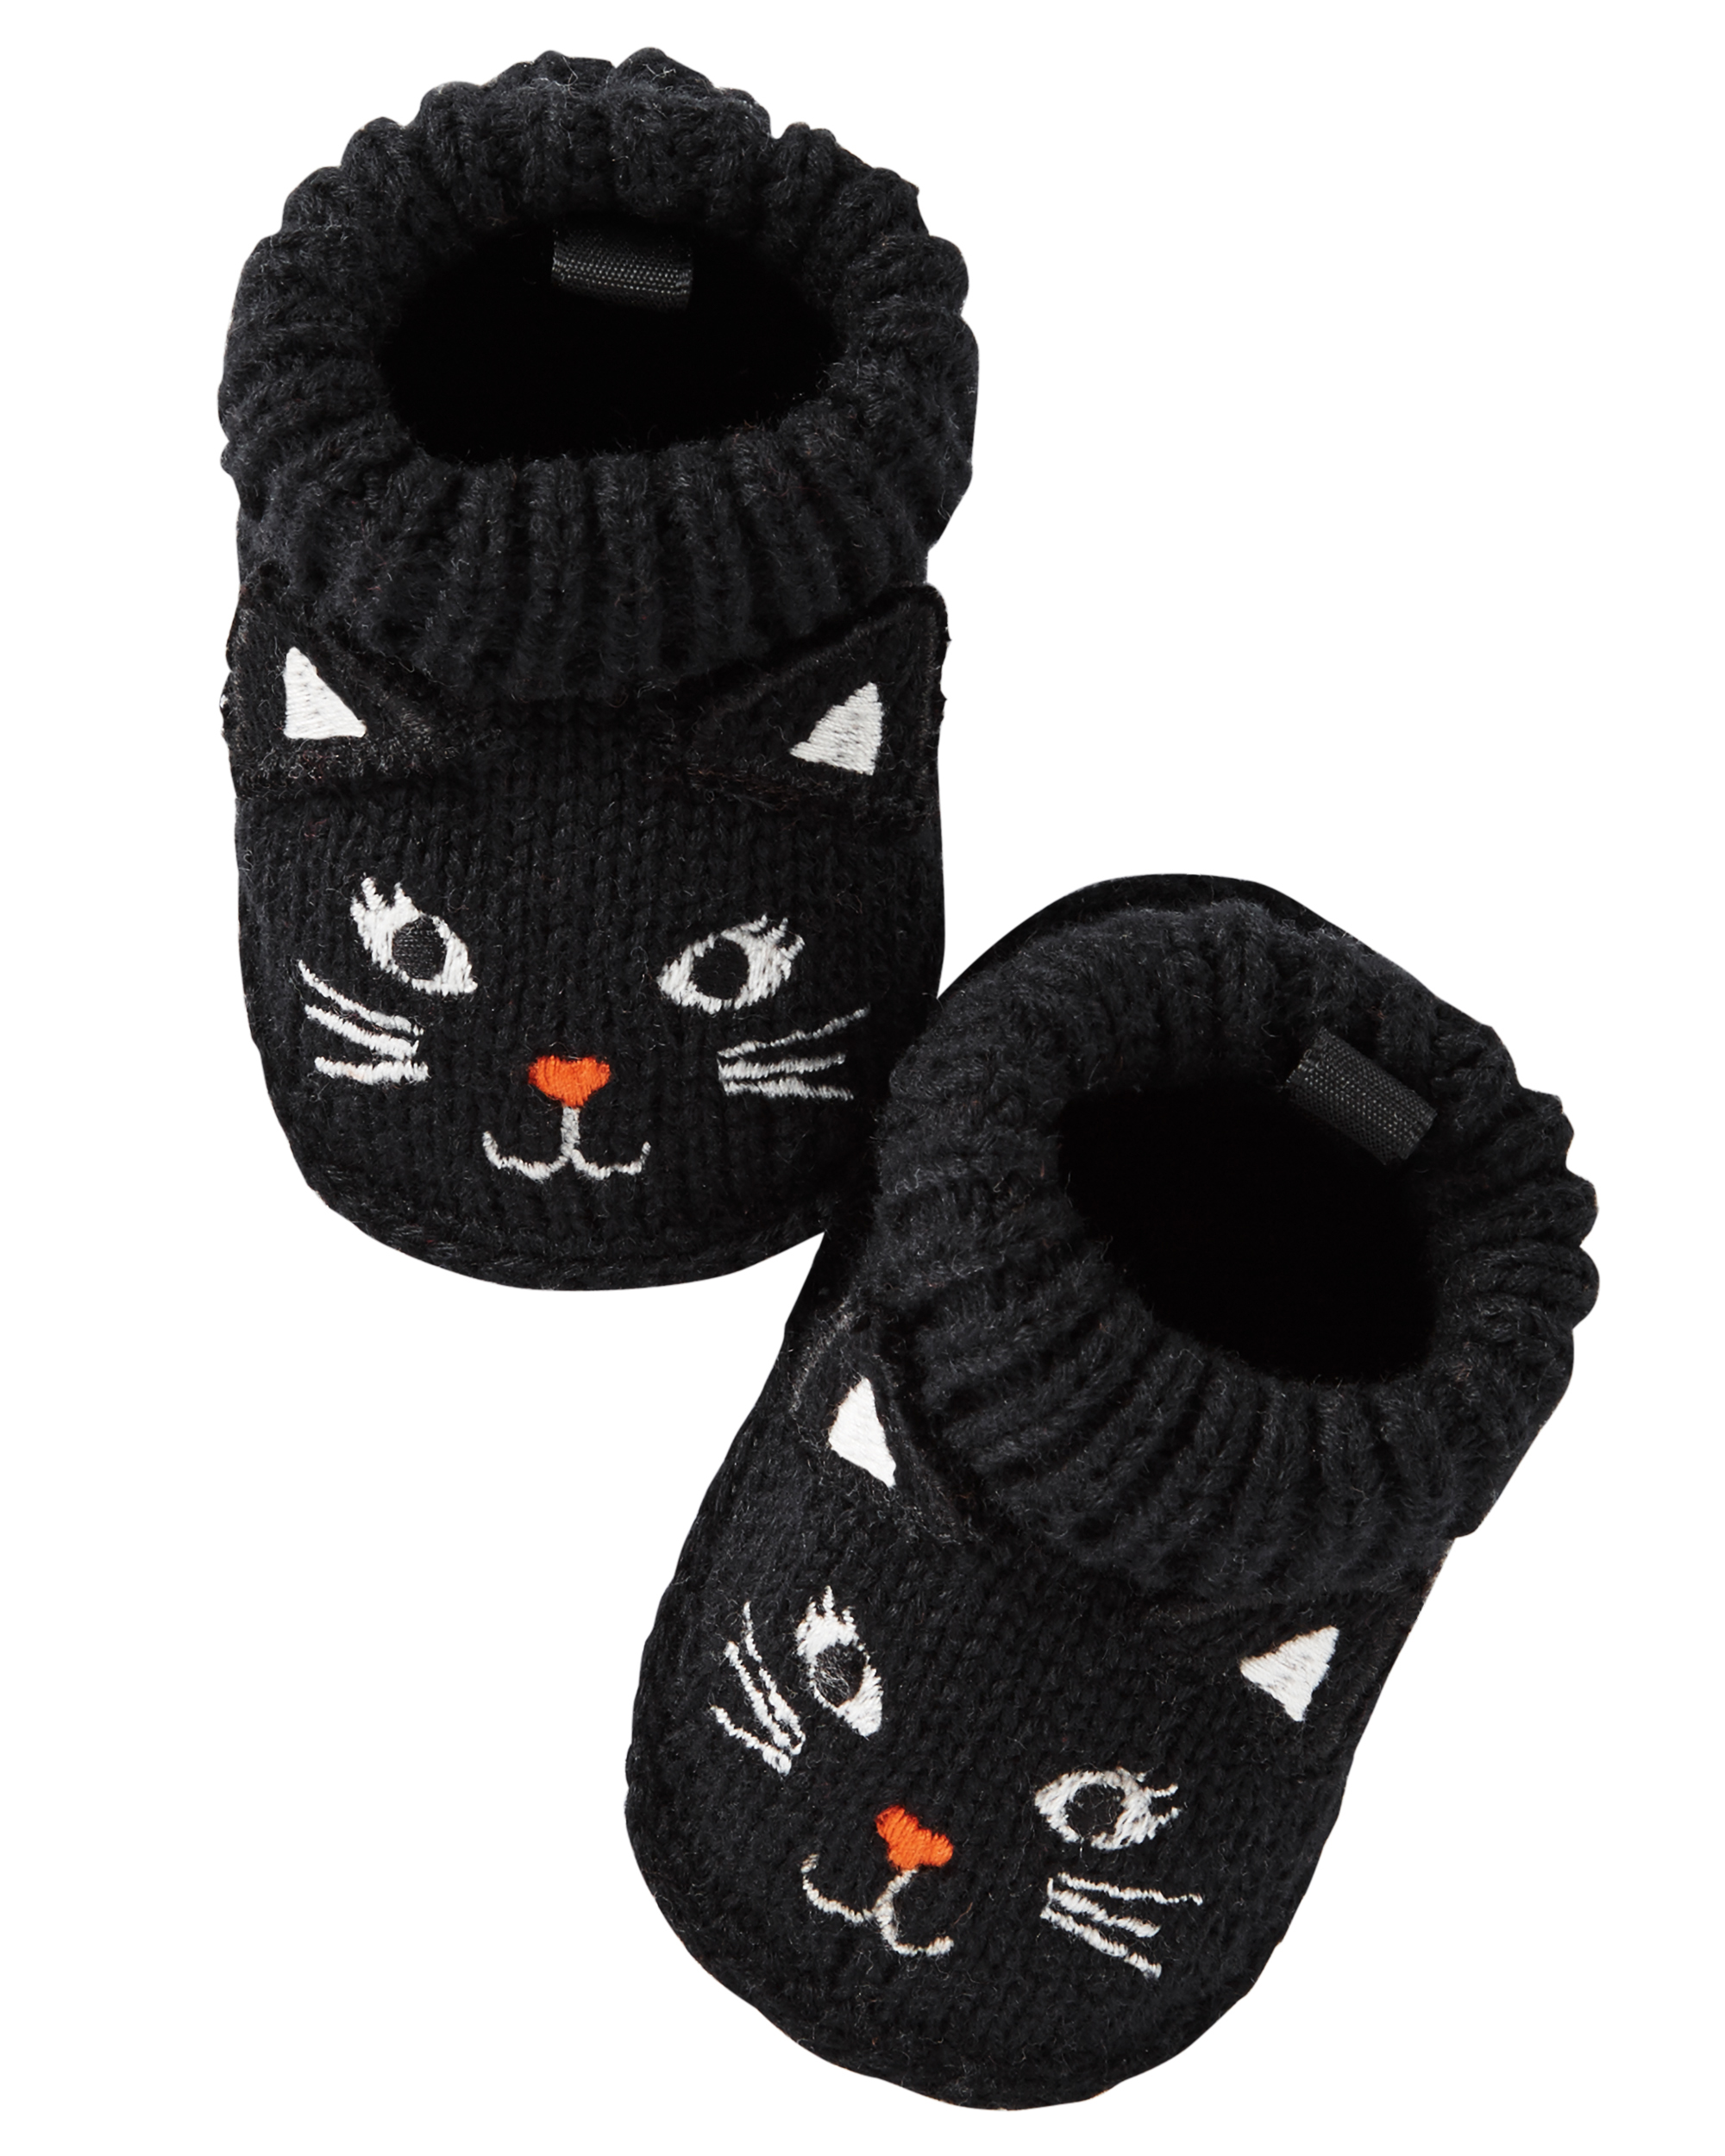 797e92f0063 Black Cat Crocheted Booties | carters.com